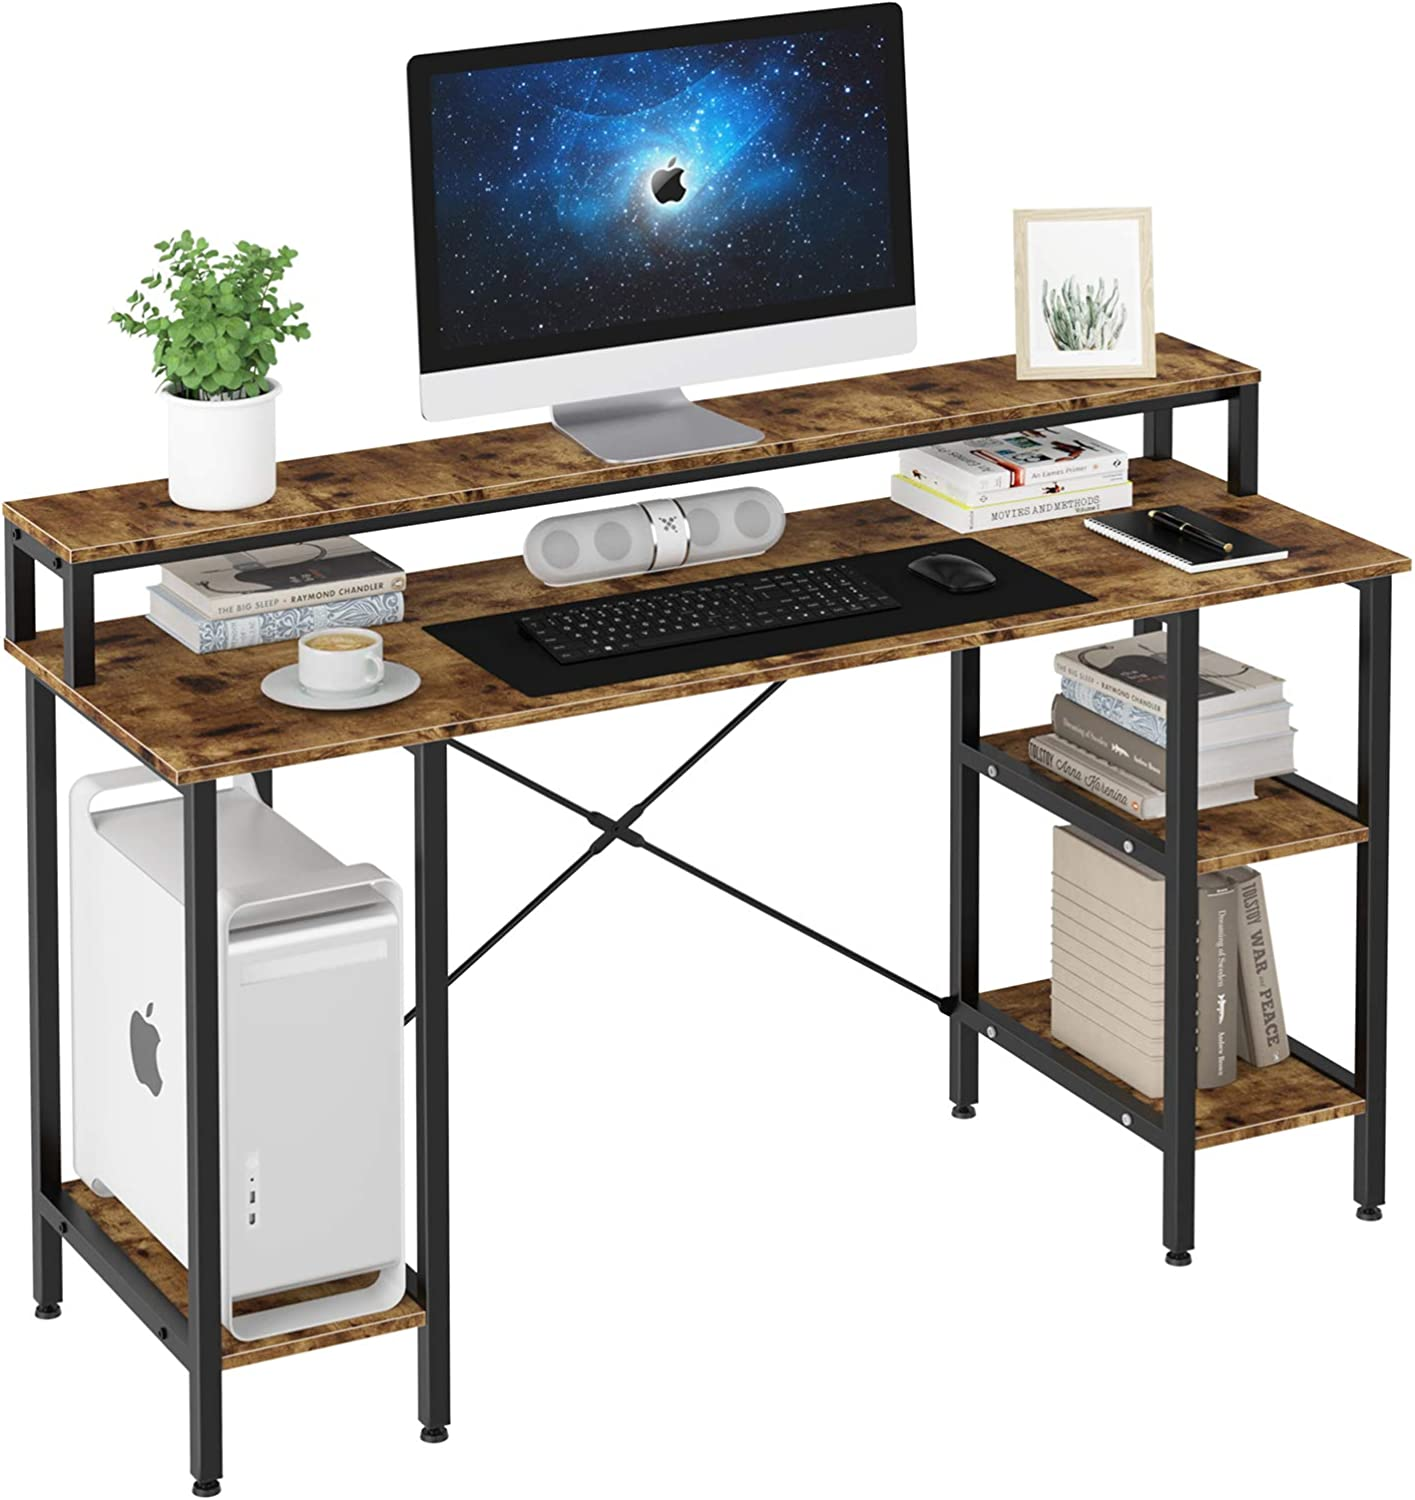 """Oneinmil Industrial Computer Desk 55"""", Mid-Century Retro Sturdy Study Writing Table Desk, Heavy Duty for 200 lbs, w/Storage Shelf Monitor Stand, Office Home Small Space Saving"""